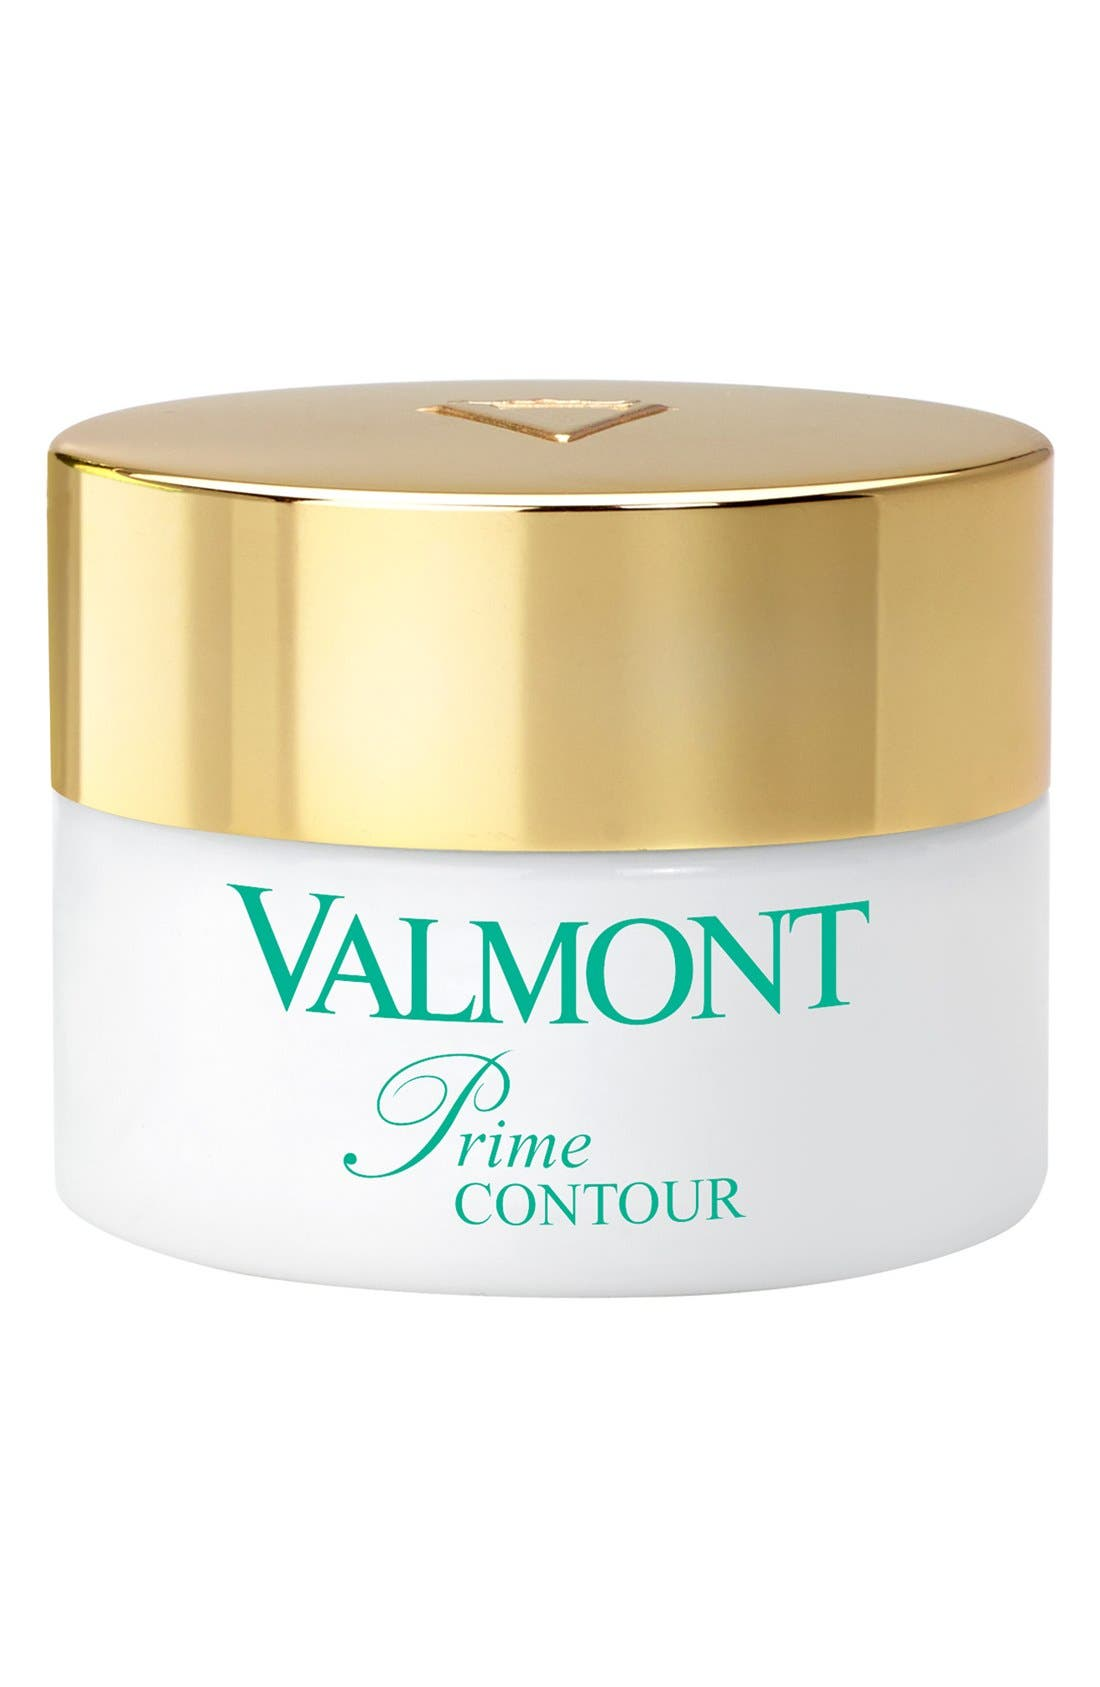 Valmont Eye & Mouth Contour Corrective Cream